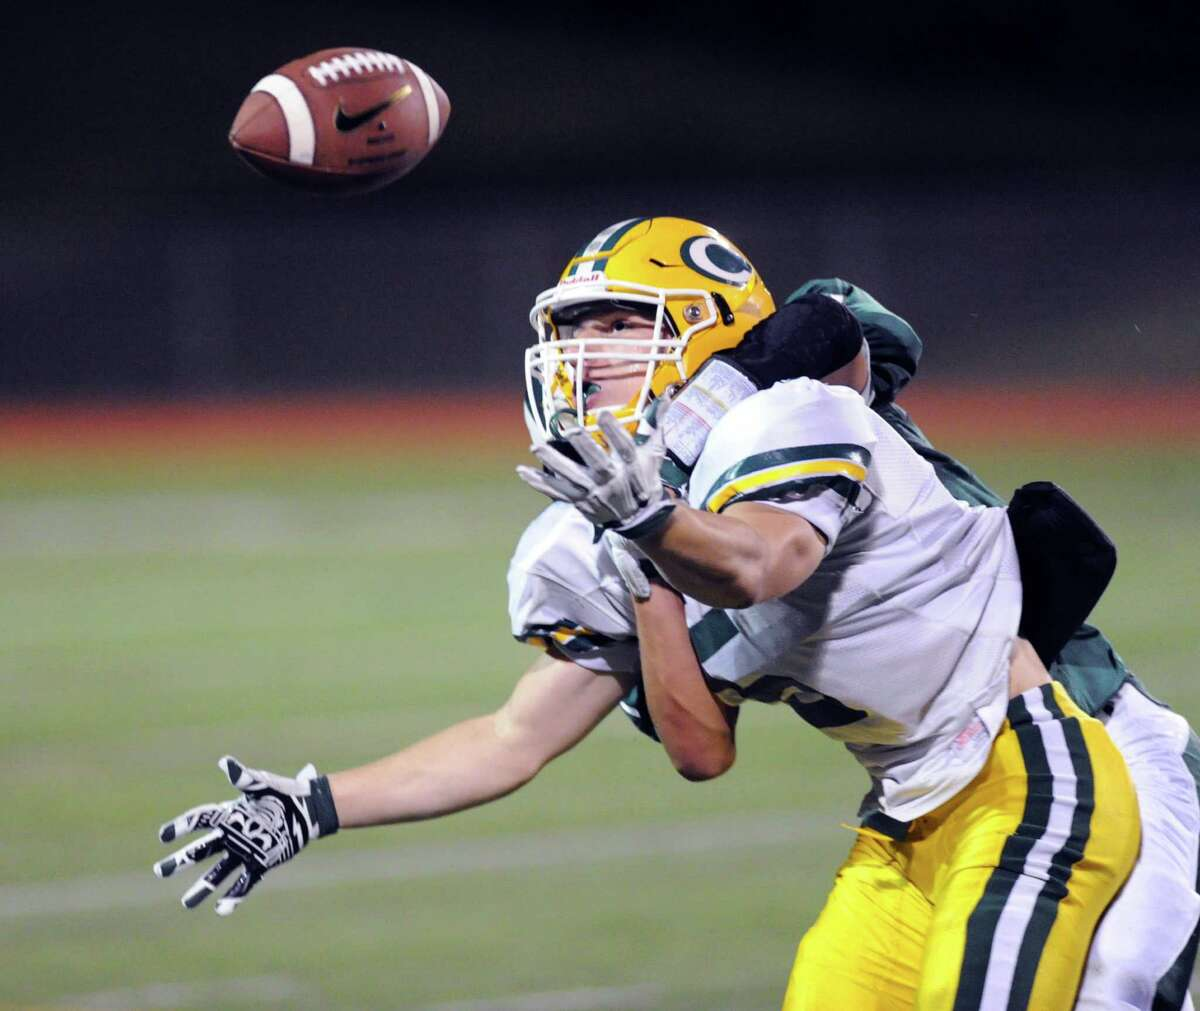 Trinity receiver Dominick Svrcek (#5) attempts to make a recpetion while being draped by a Norwalk defender during the high school football game between Norwalk High School and Trinity Catholic High School at Norwalk, Conn., Friday night, Sept. 25, 2015. Svrcek did not make the catch on the play.